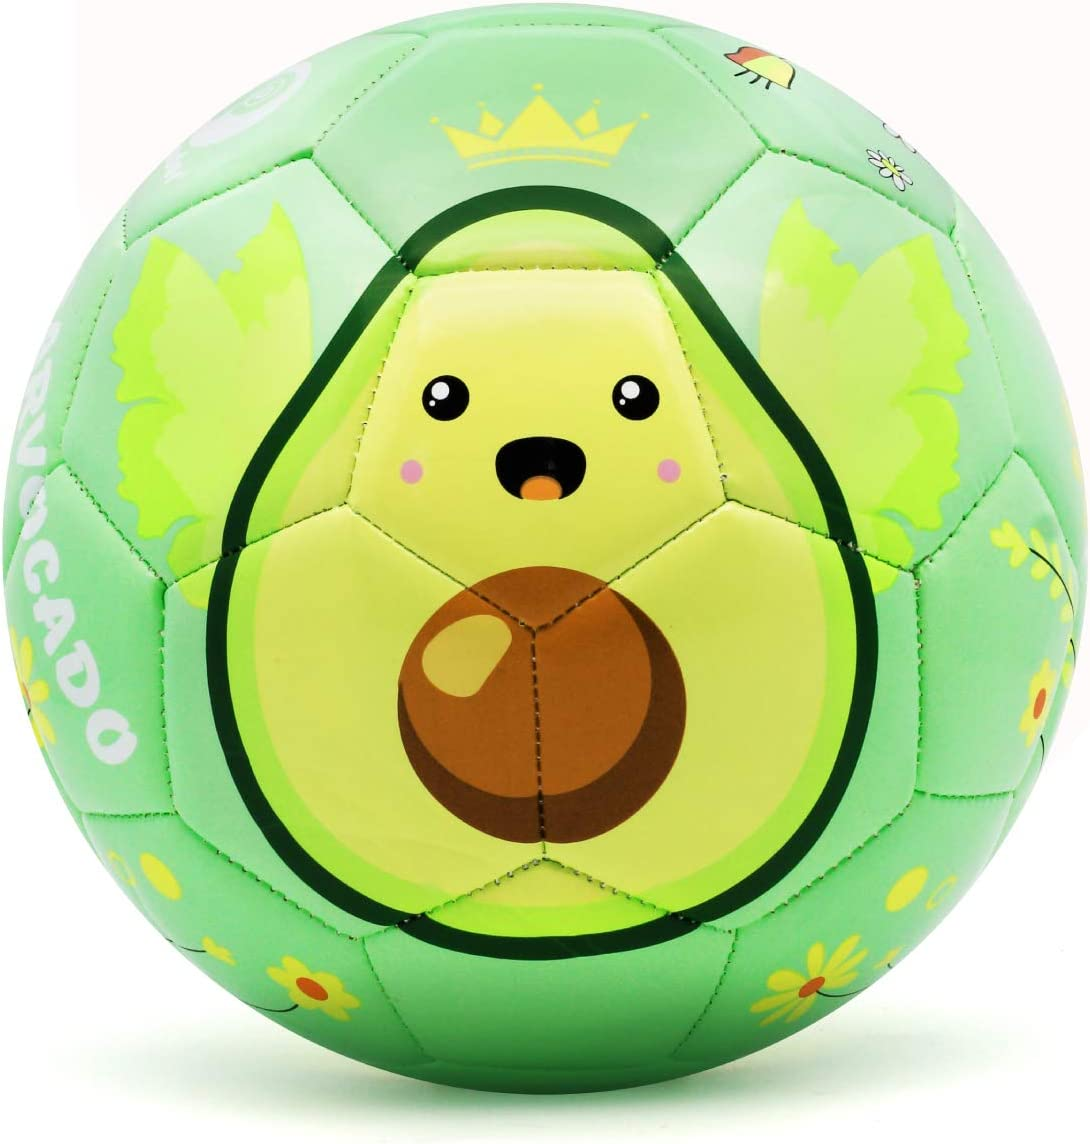 Amazon Com Picador Cute Soft Cartoon Soccer Ball Size 3 For Kids Toddlers Girls Boys Kindergarten Children S Day Shipped Deflated Avocado Sports Outdoors